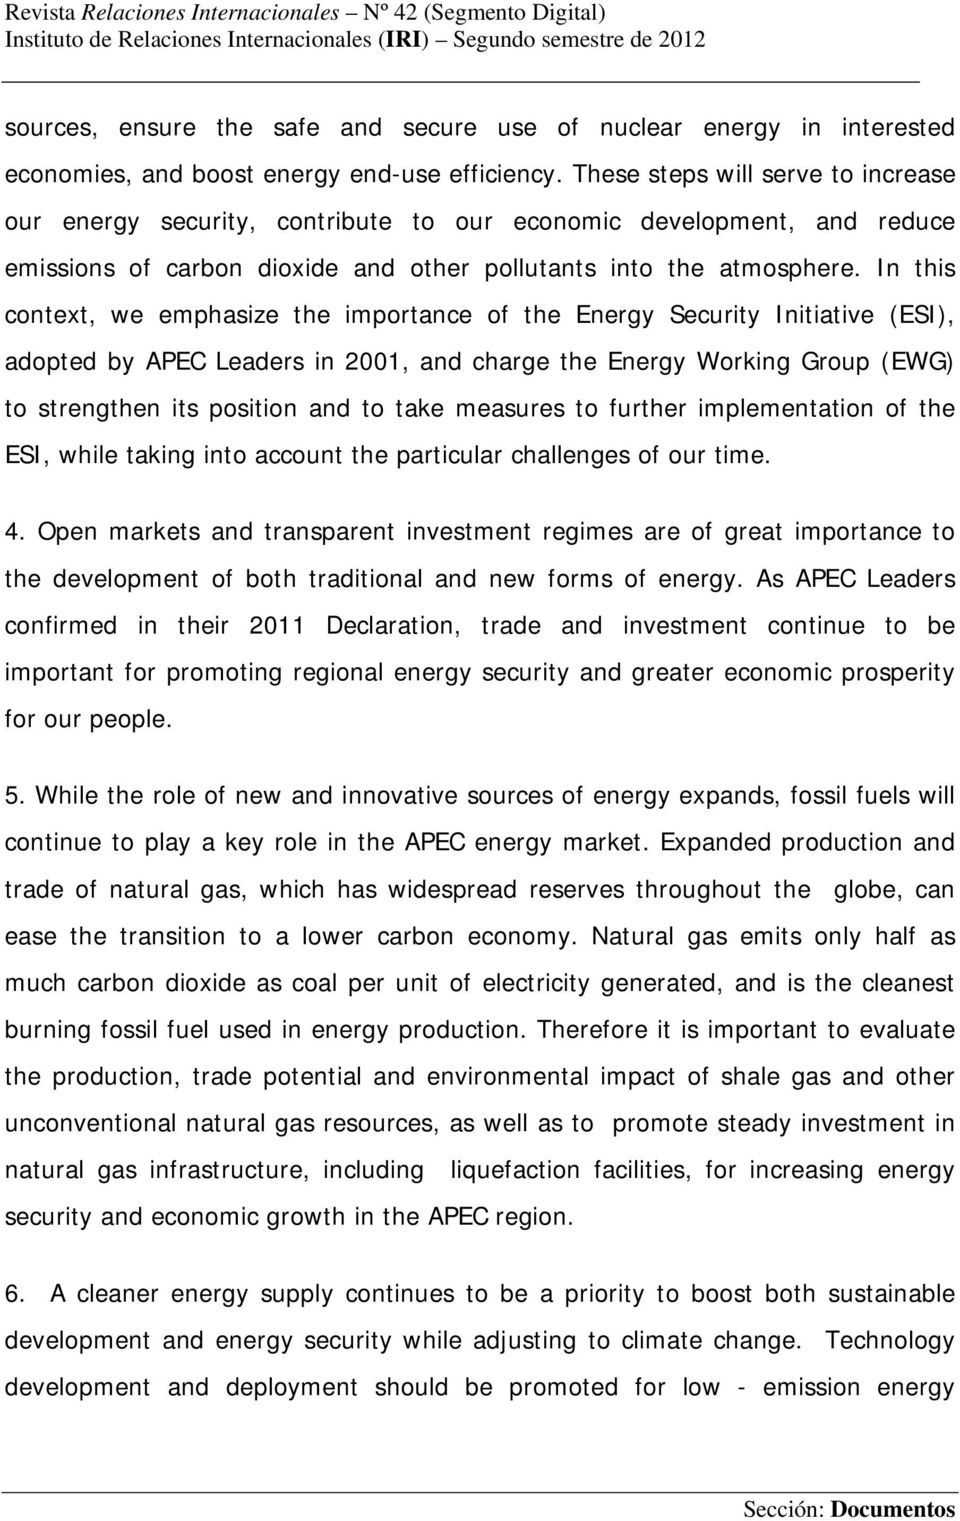 In this context, we emphasize the importance of the Energy Security Initiative (ESI), adopted by APEC Leaders in 2001, and charge the Energy Working Group (EWG) to strengthen its position and to take